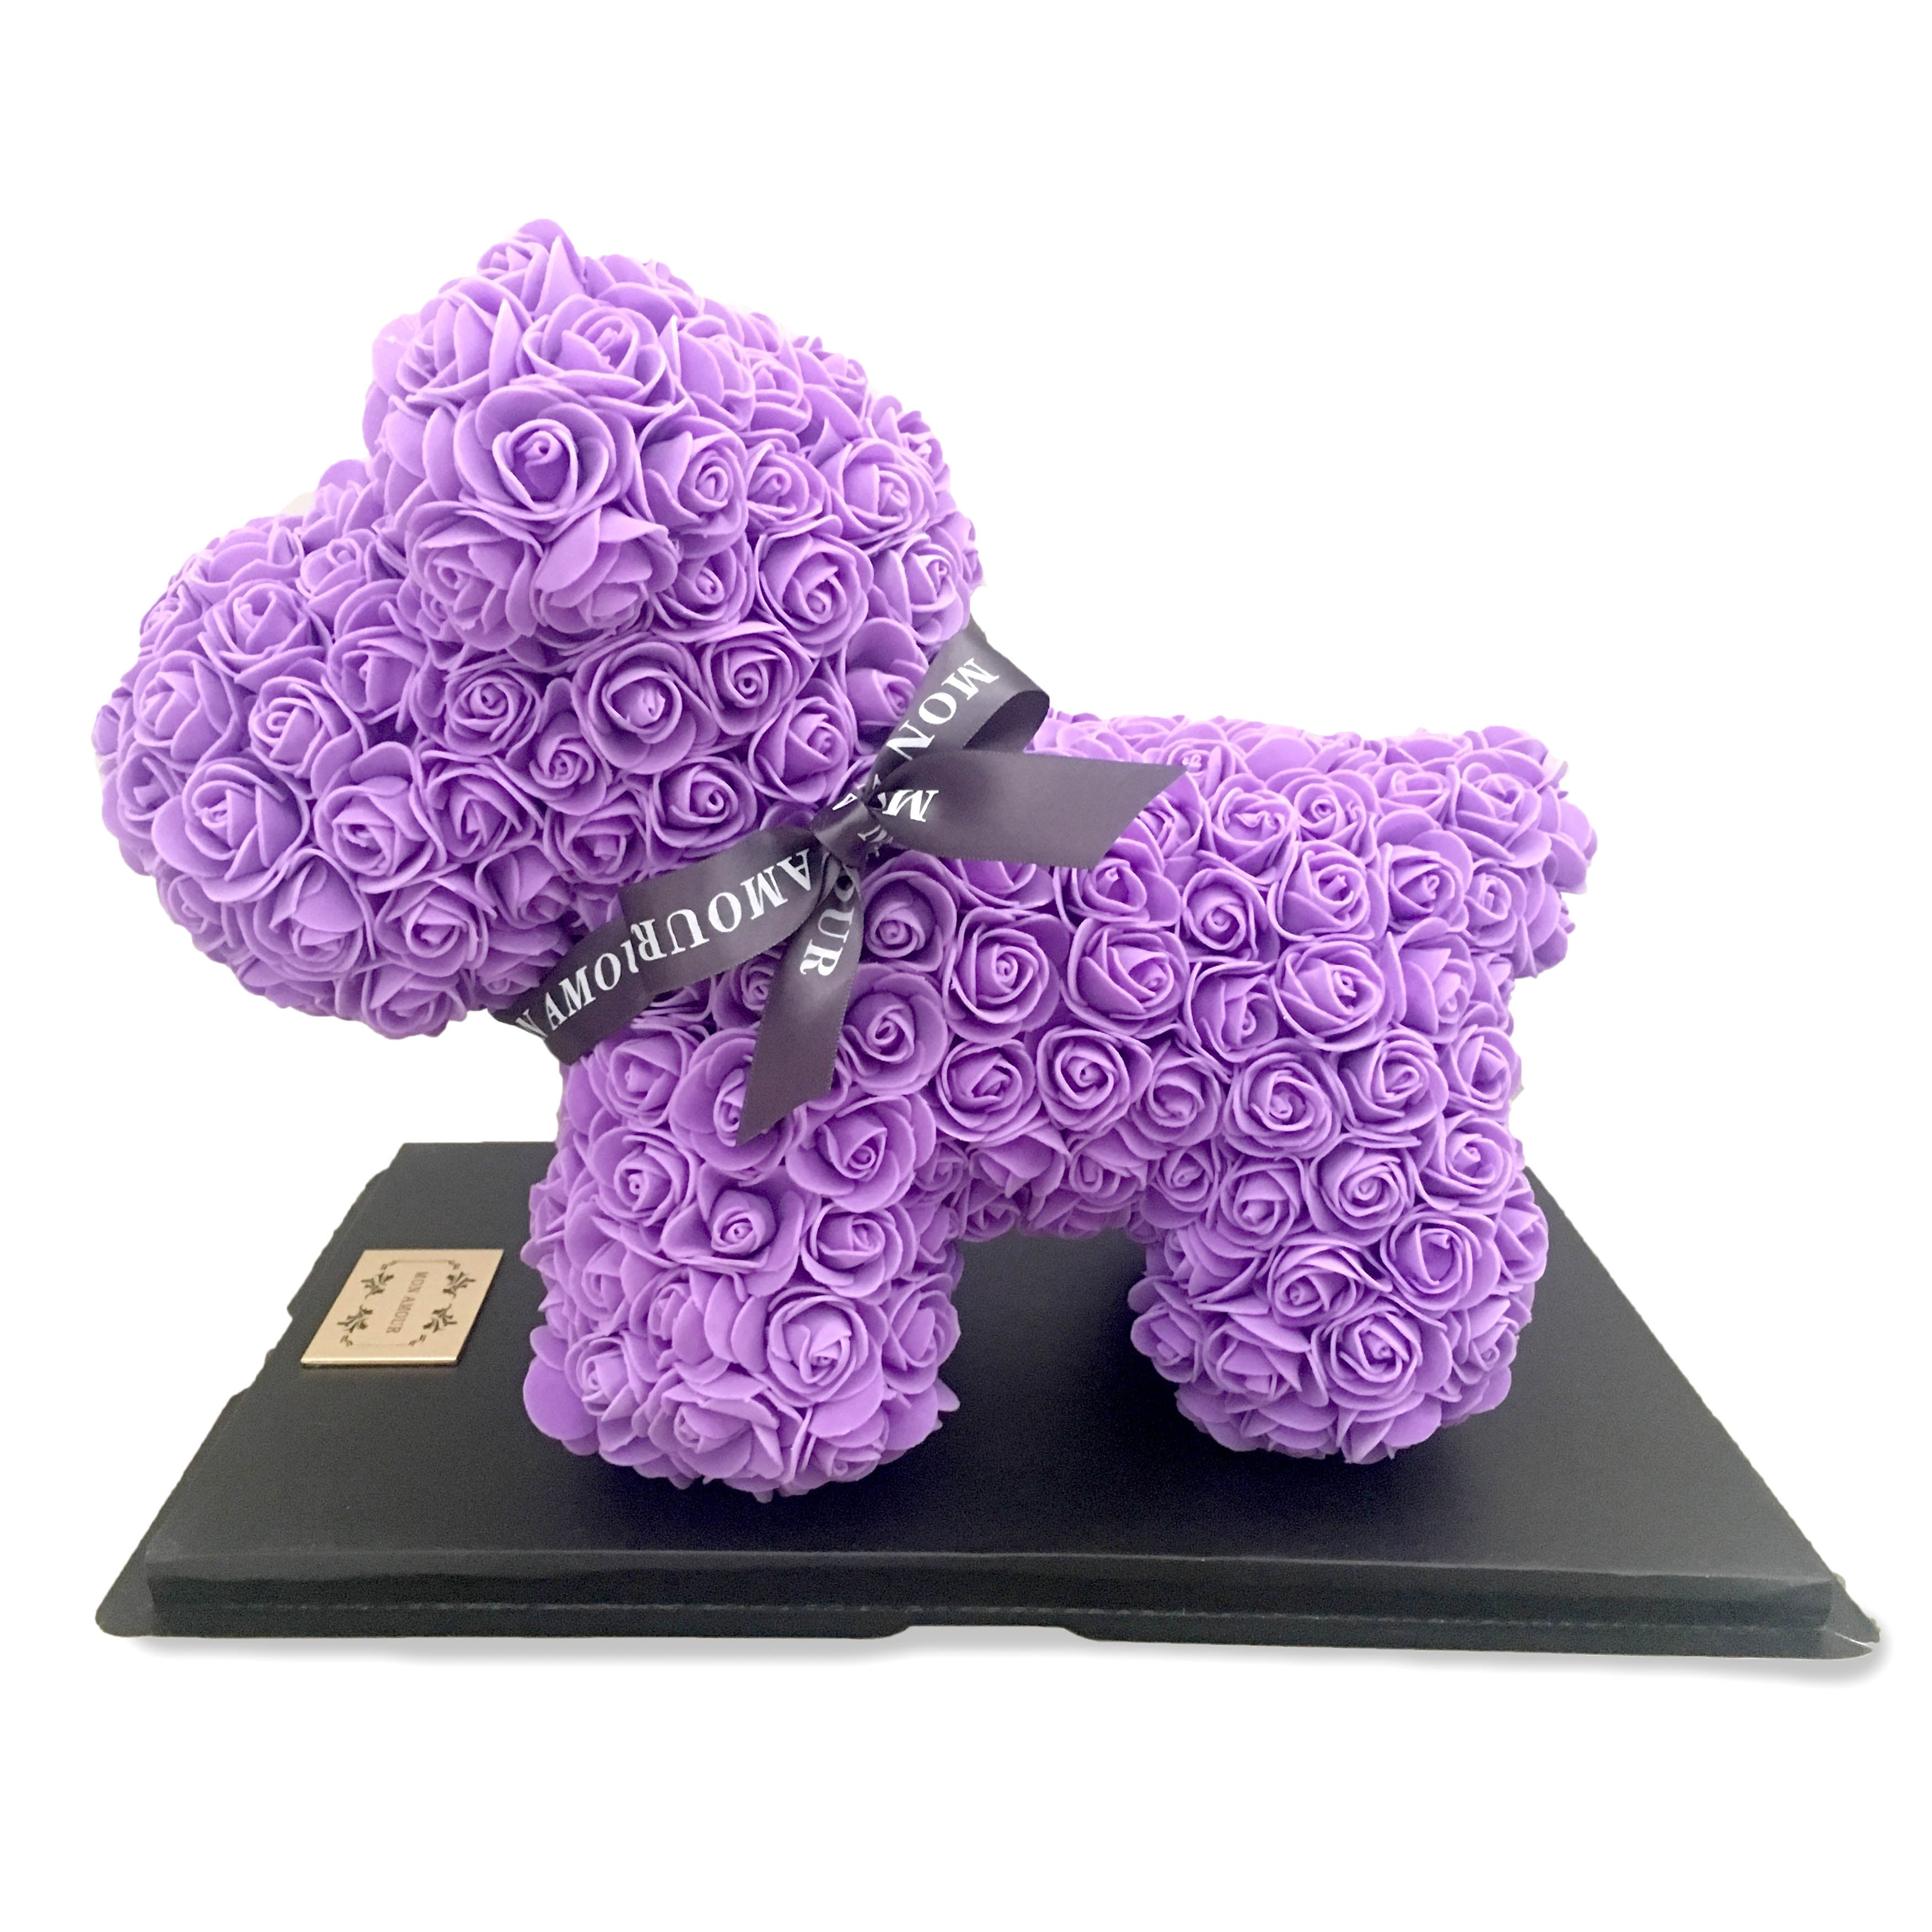 Mon Amour, Roses, with love, with care, forever, long-lasting, different kind of bloom, puppy, Puppy Collection, Dog, Blue roses, home decor, For Her, Purple, Cute